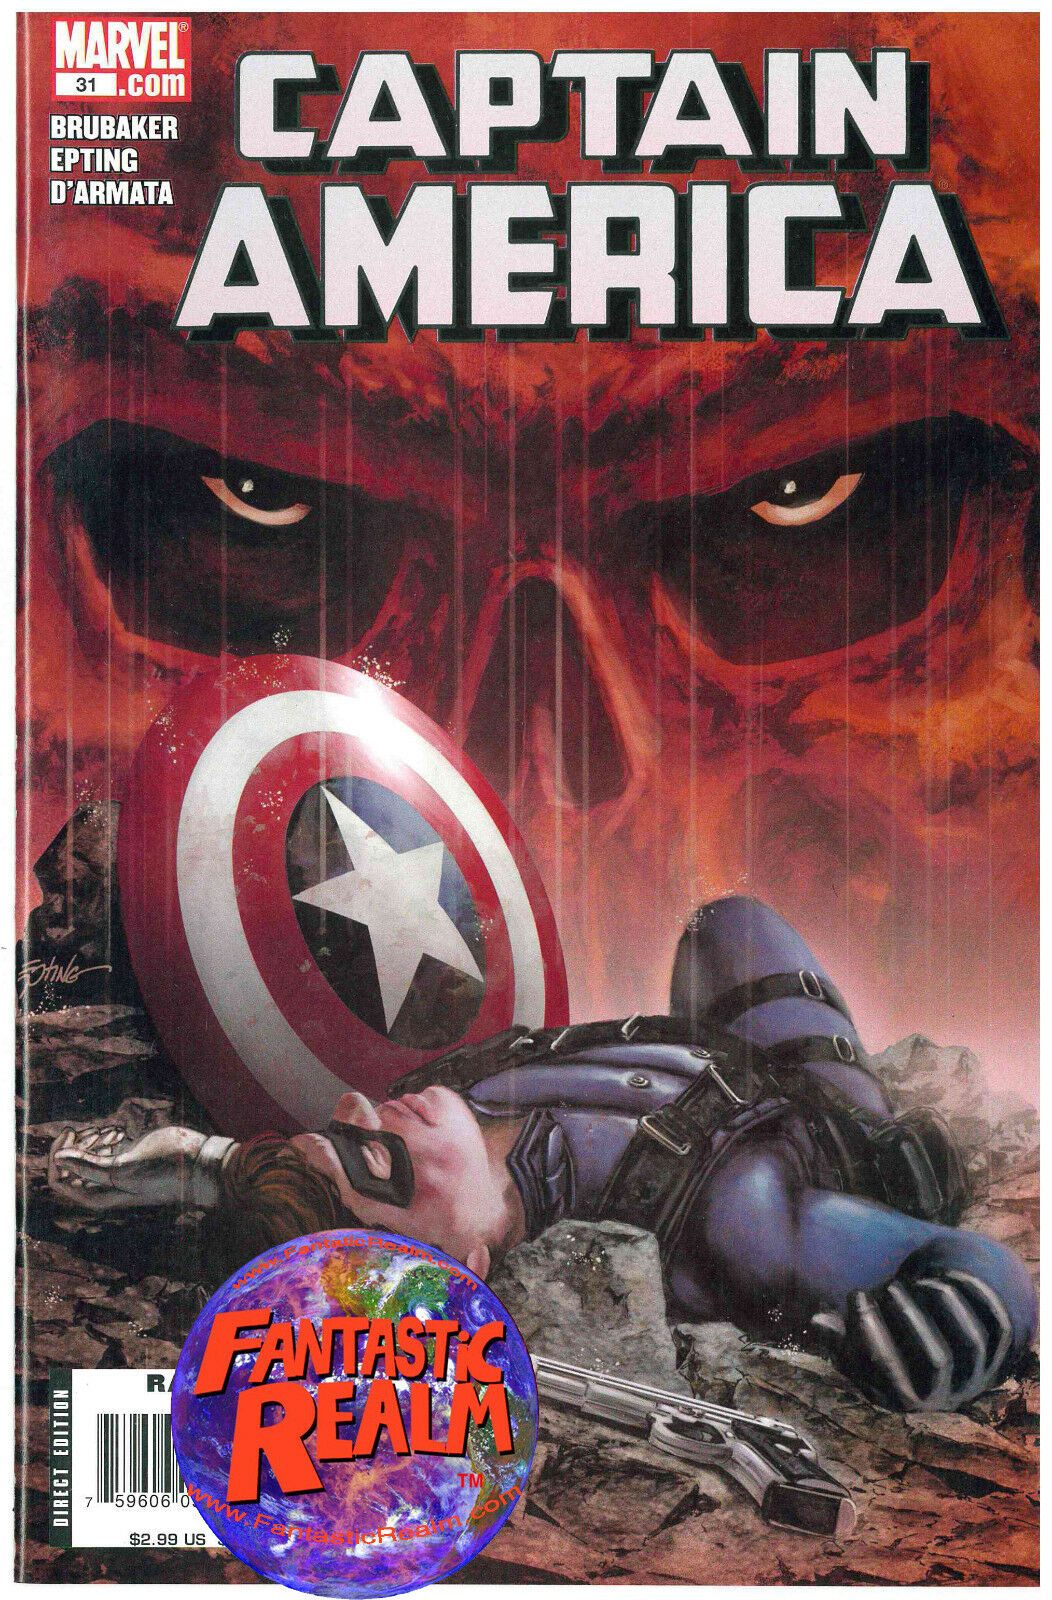 CAPTAIN AMERICA #31 WINTER SOLDIER (2004) MARVEL COMICS